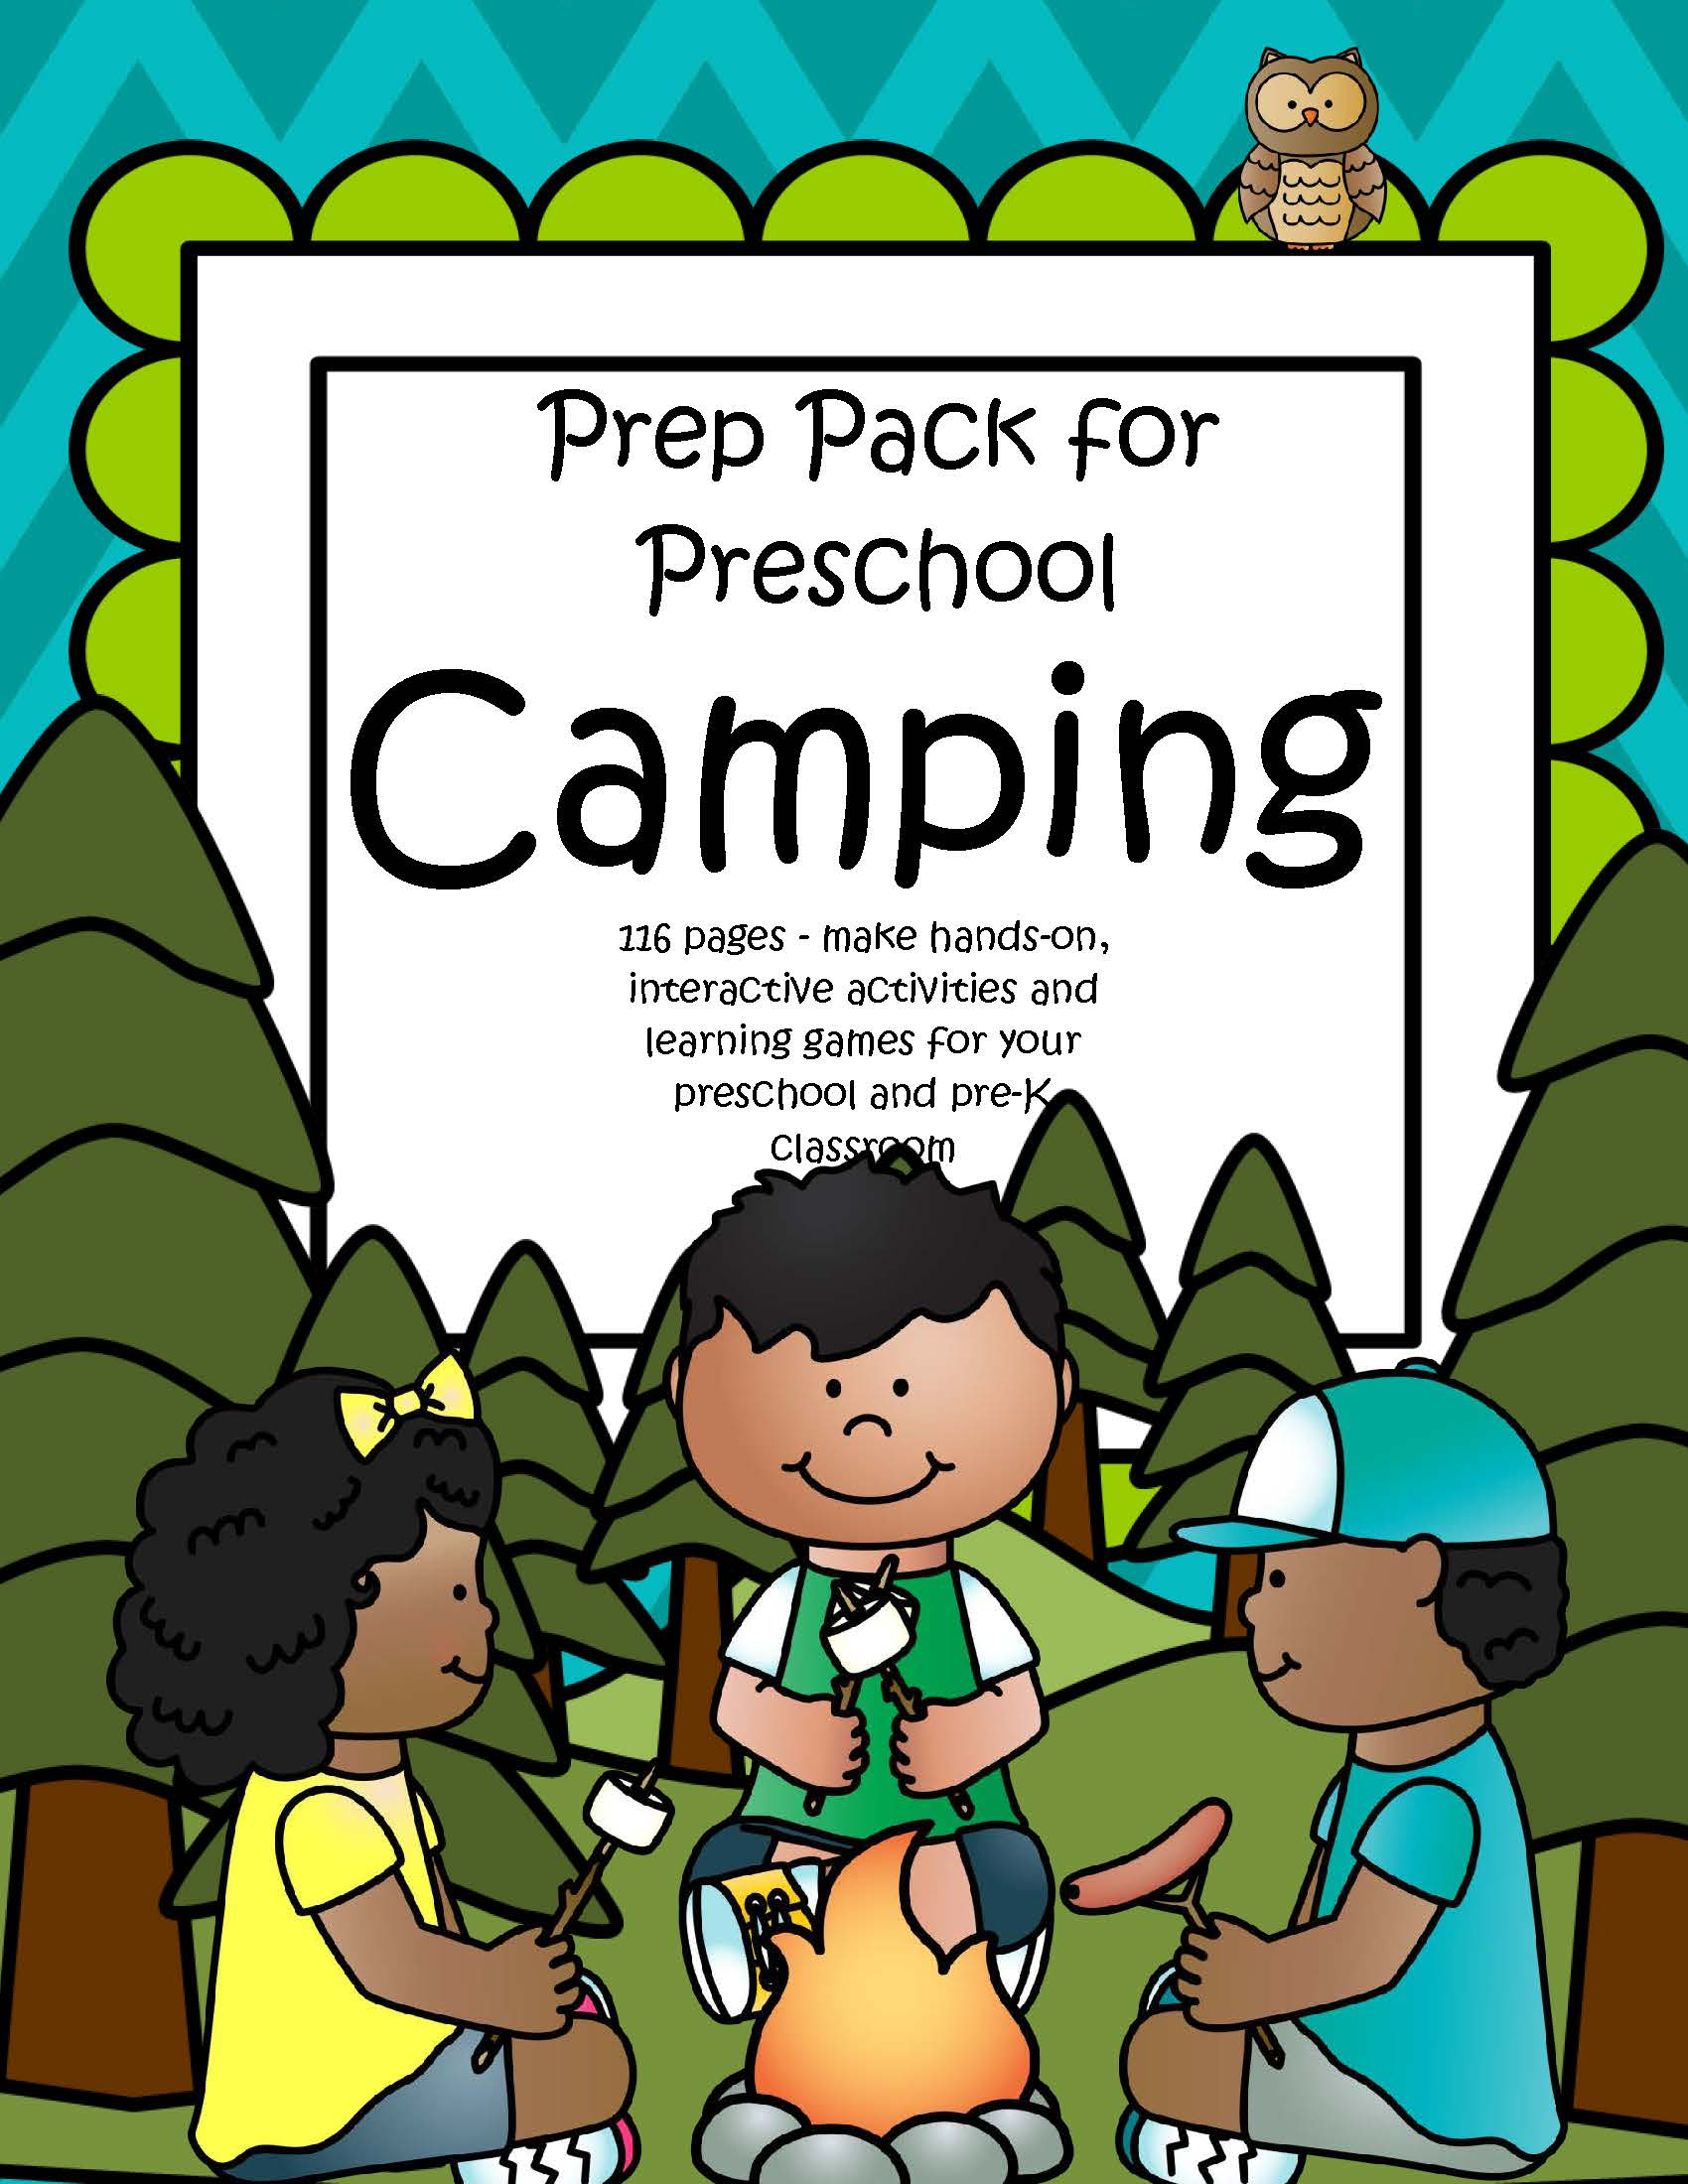 Camping Theme Activities And Printables For Preschool And